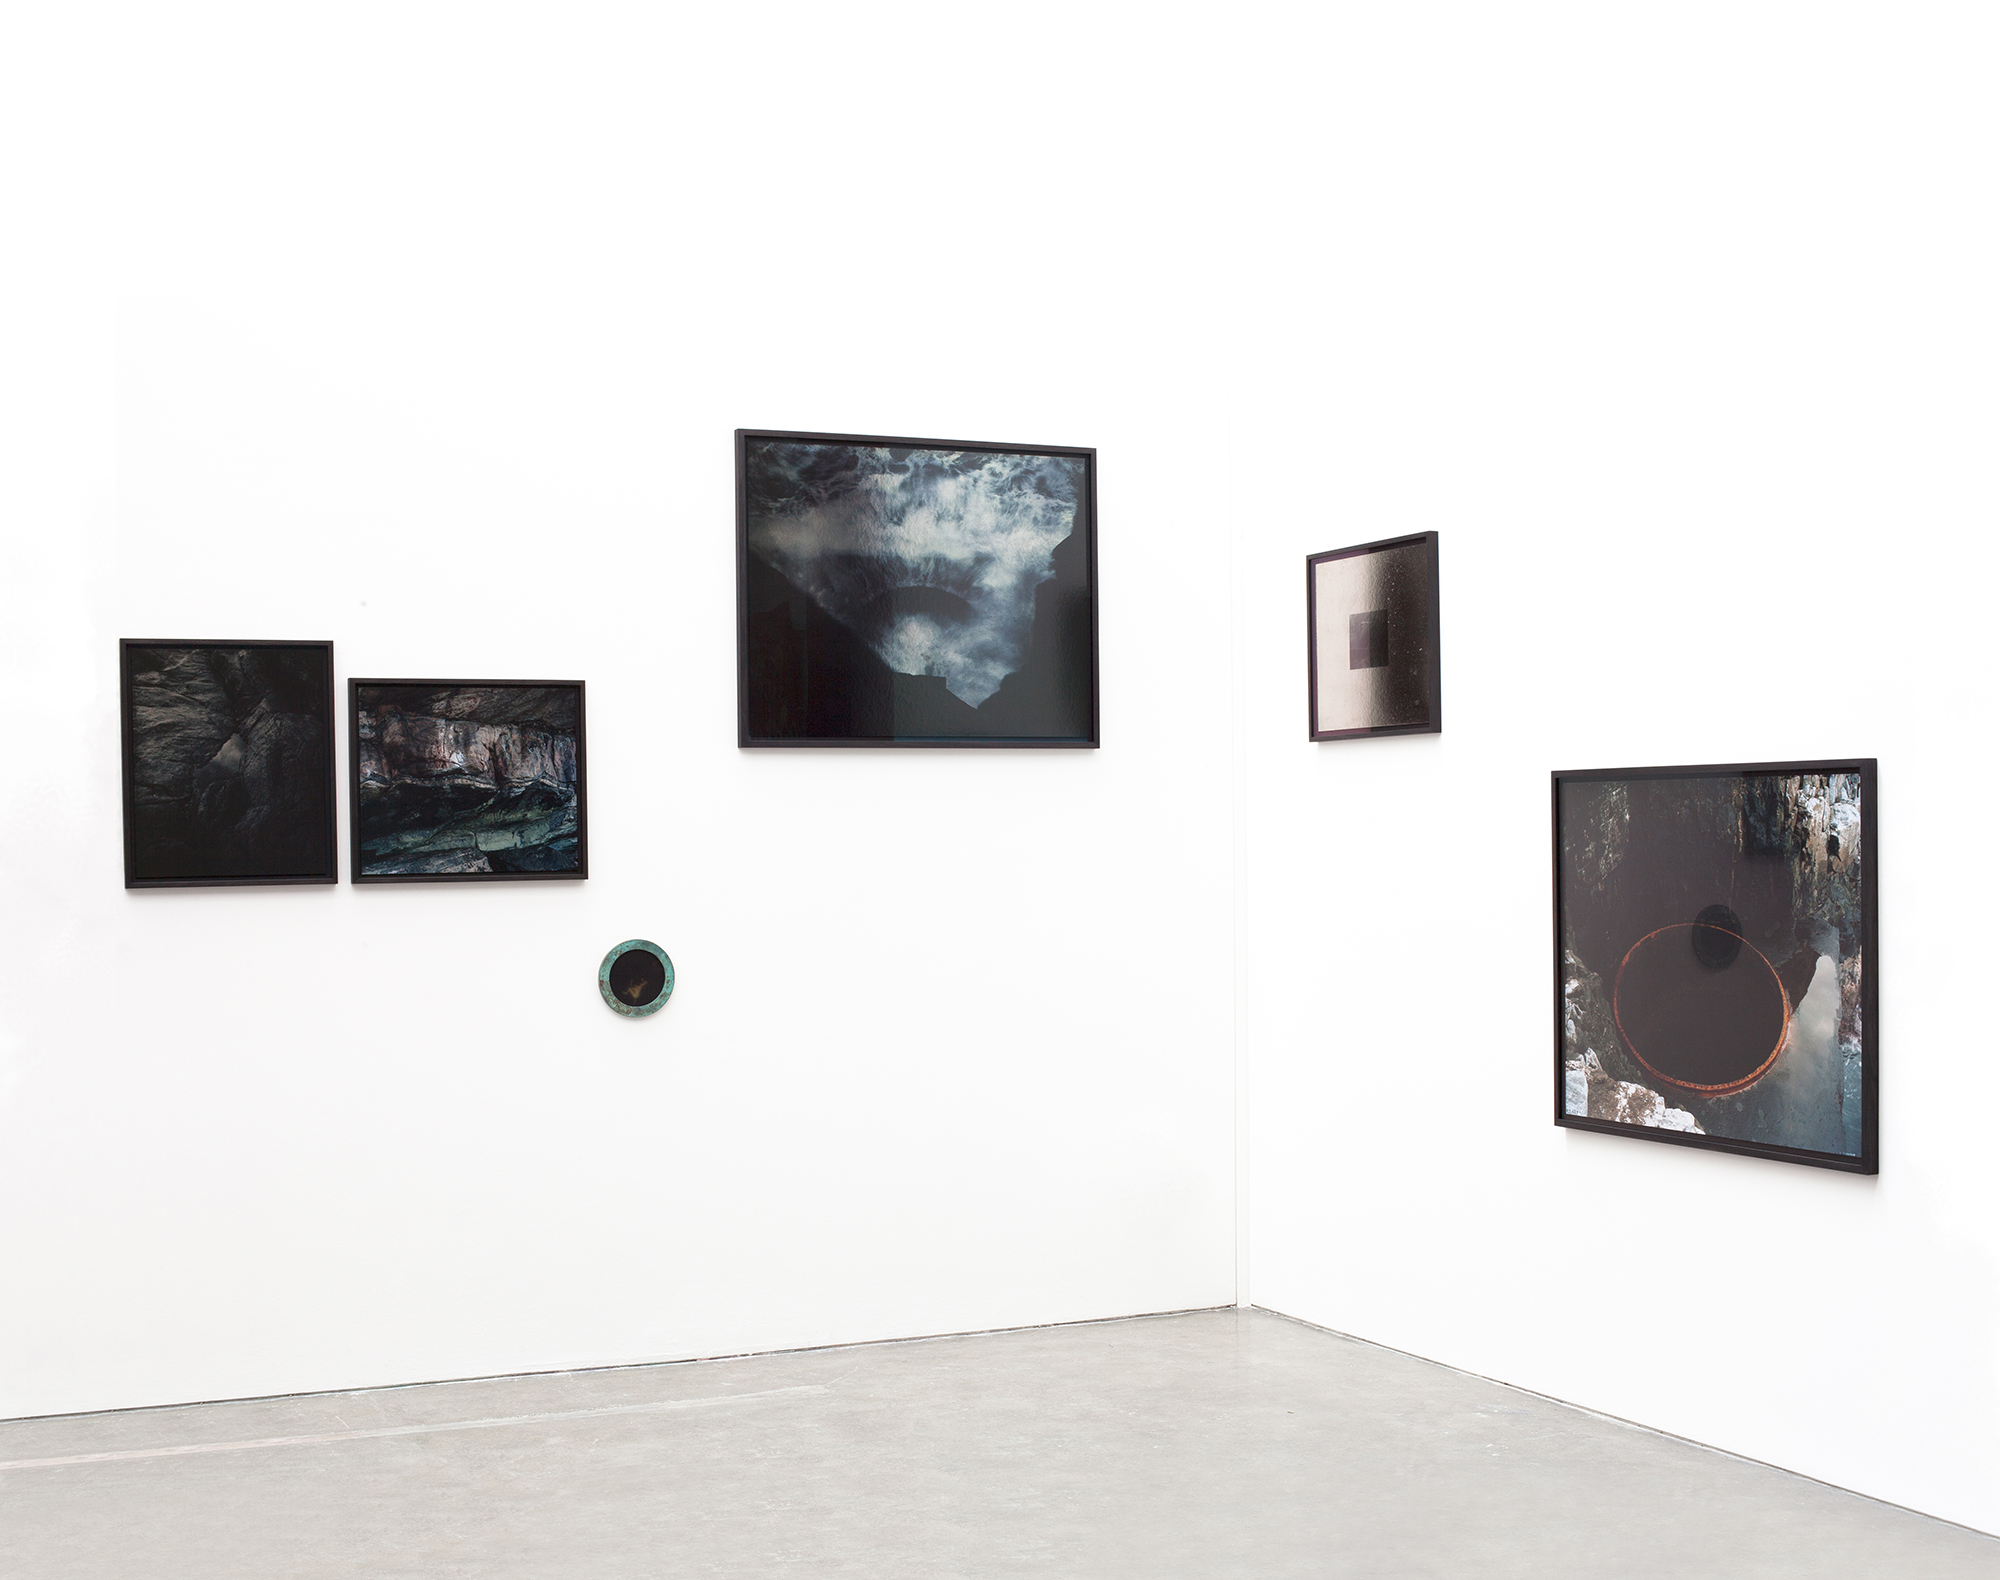 Installation view of A black hole in the ocean. 2015